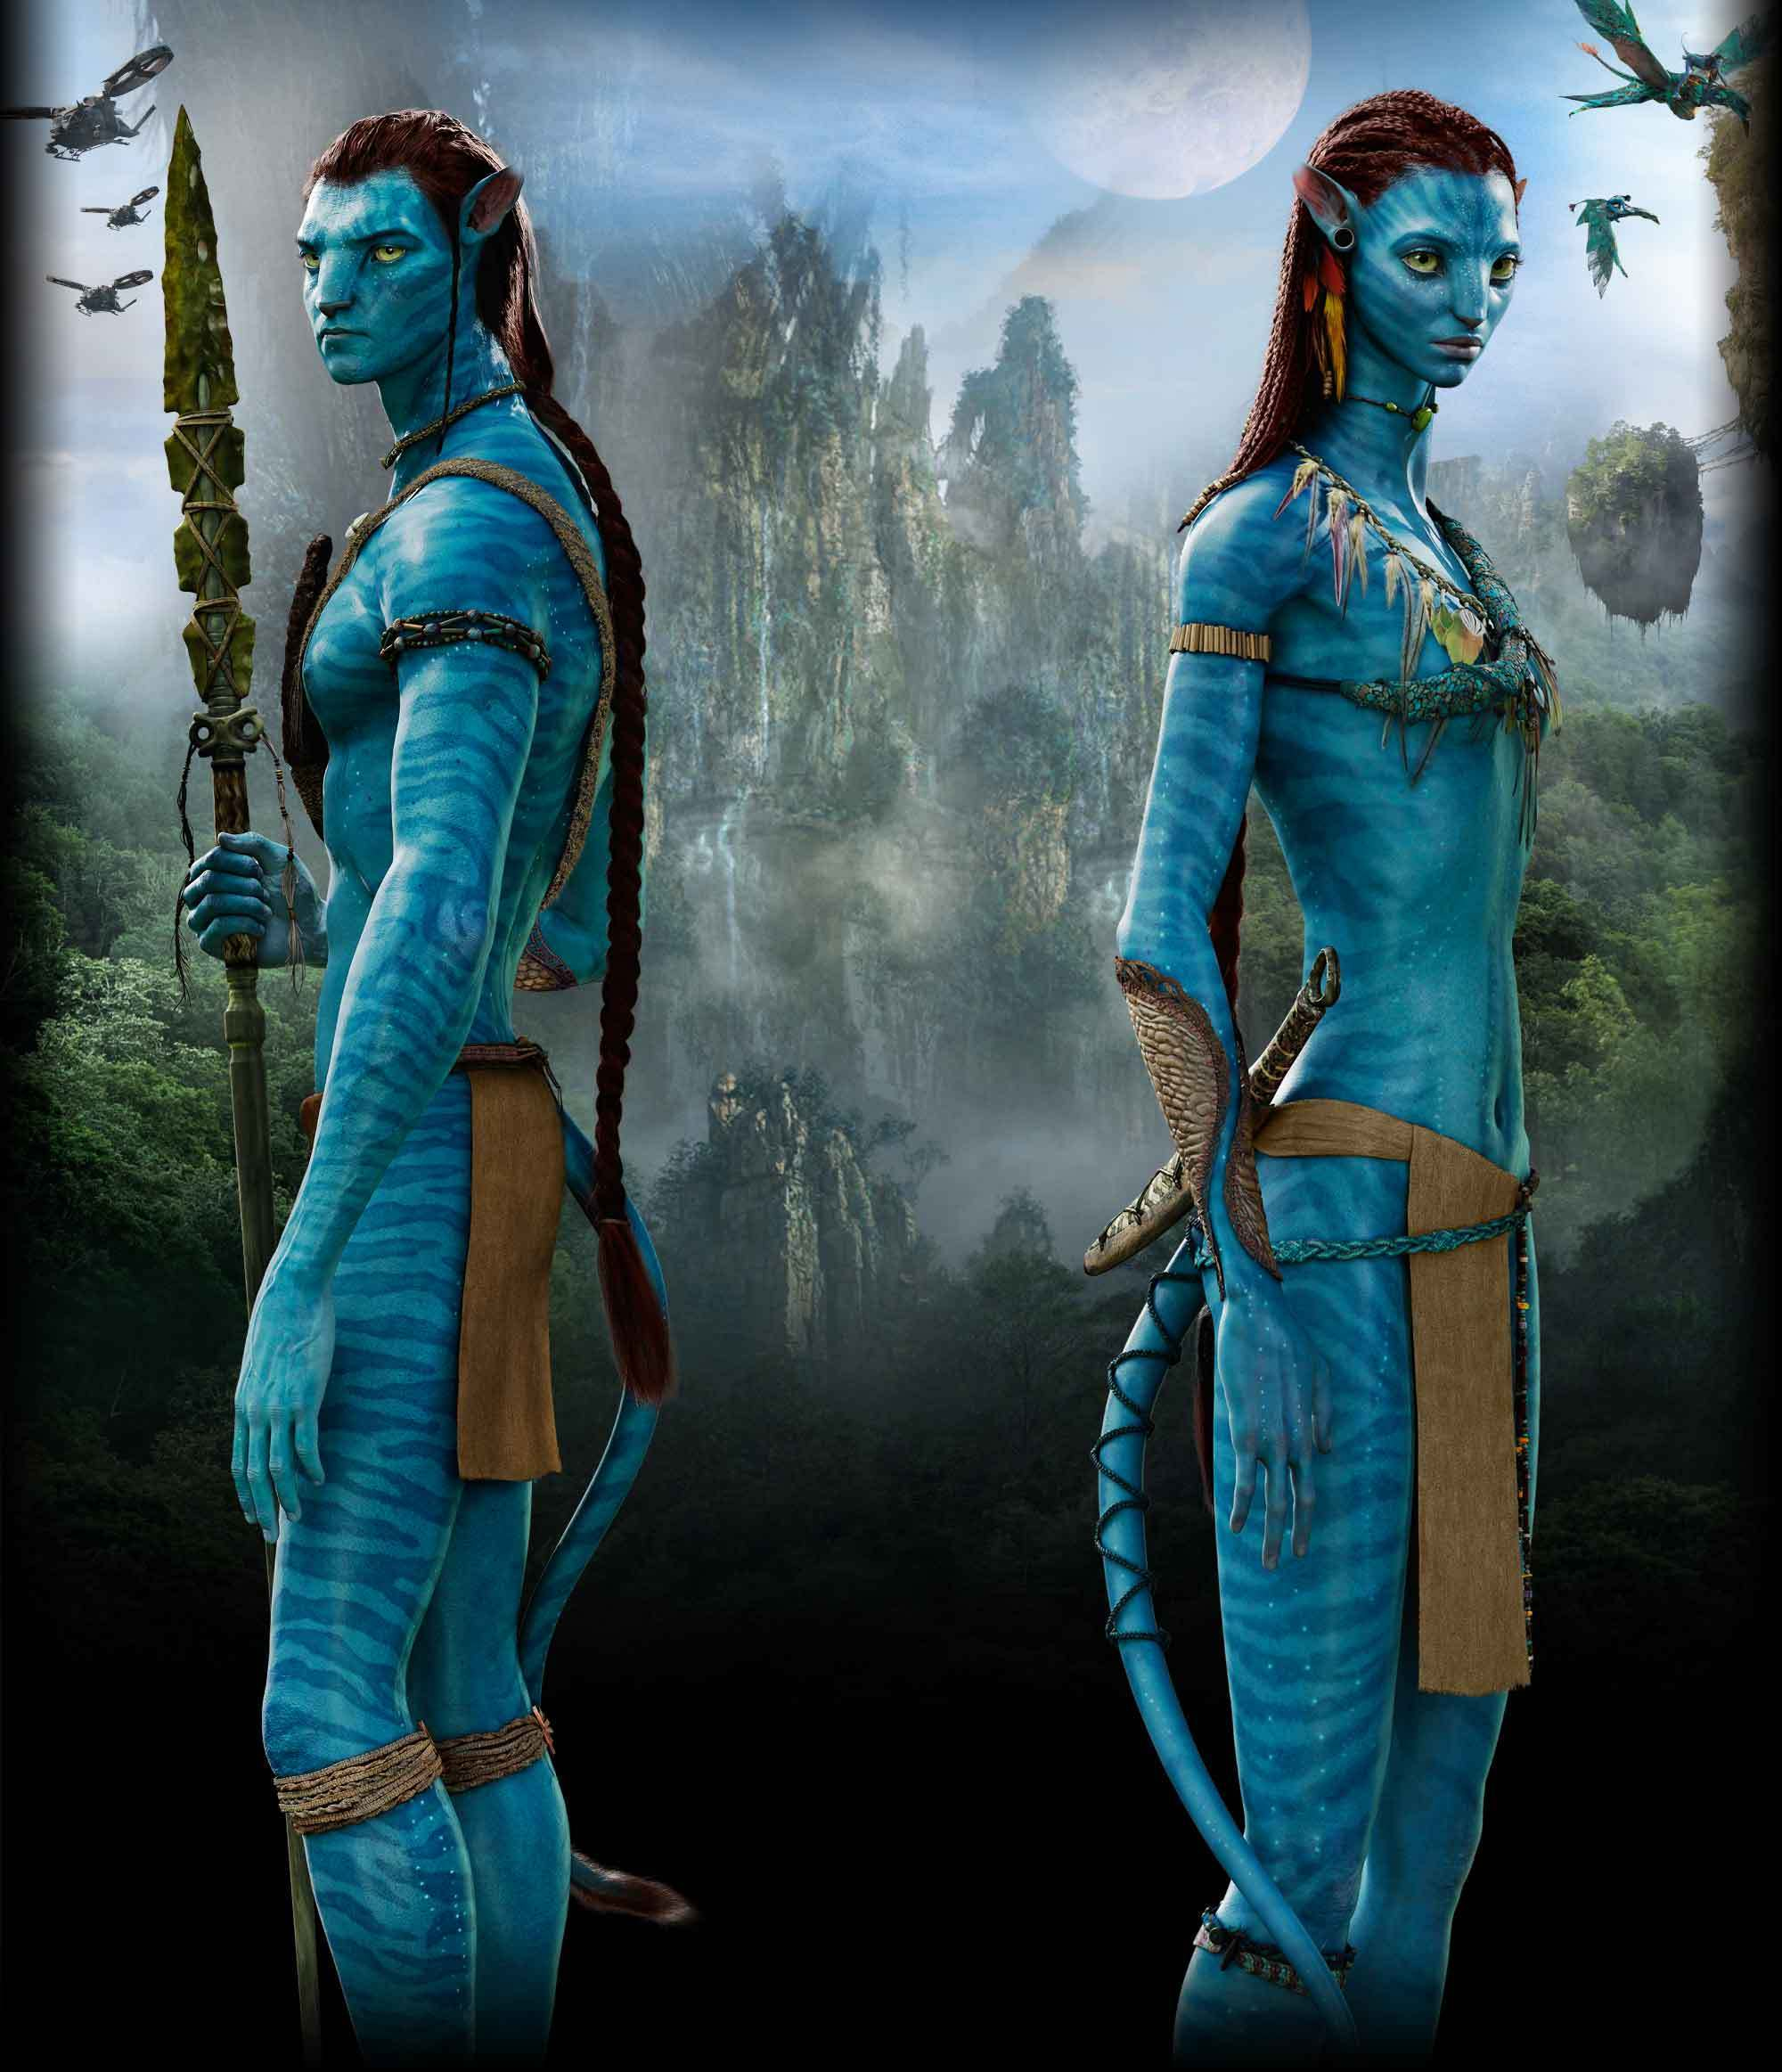 Pictures From Avatar: Avatar Images AvAtAr HD Wallpaper And Background Photos